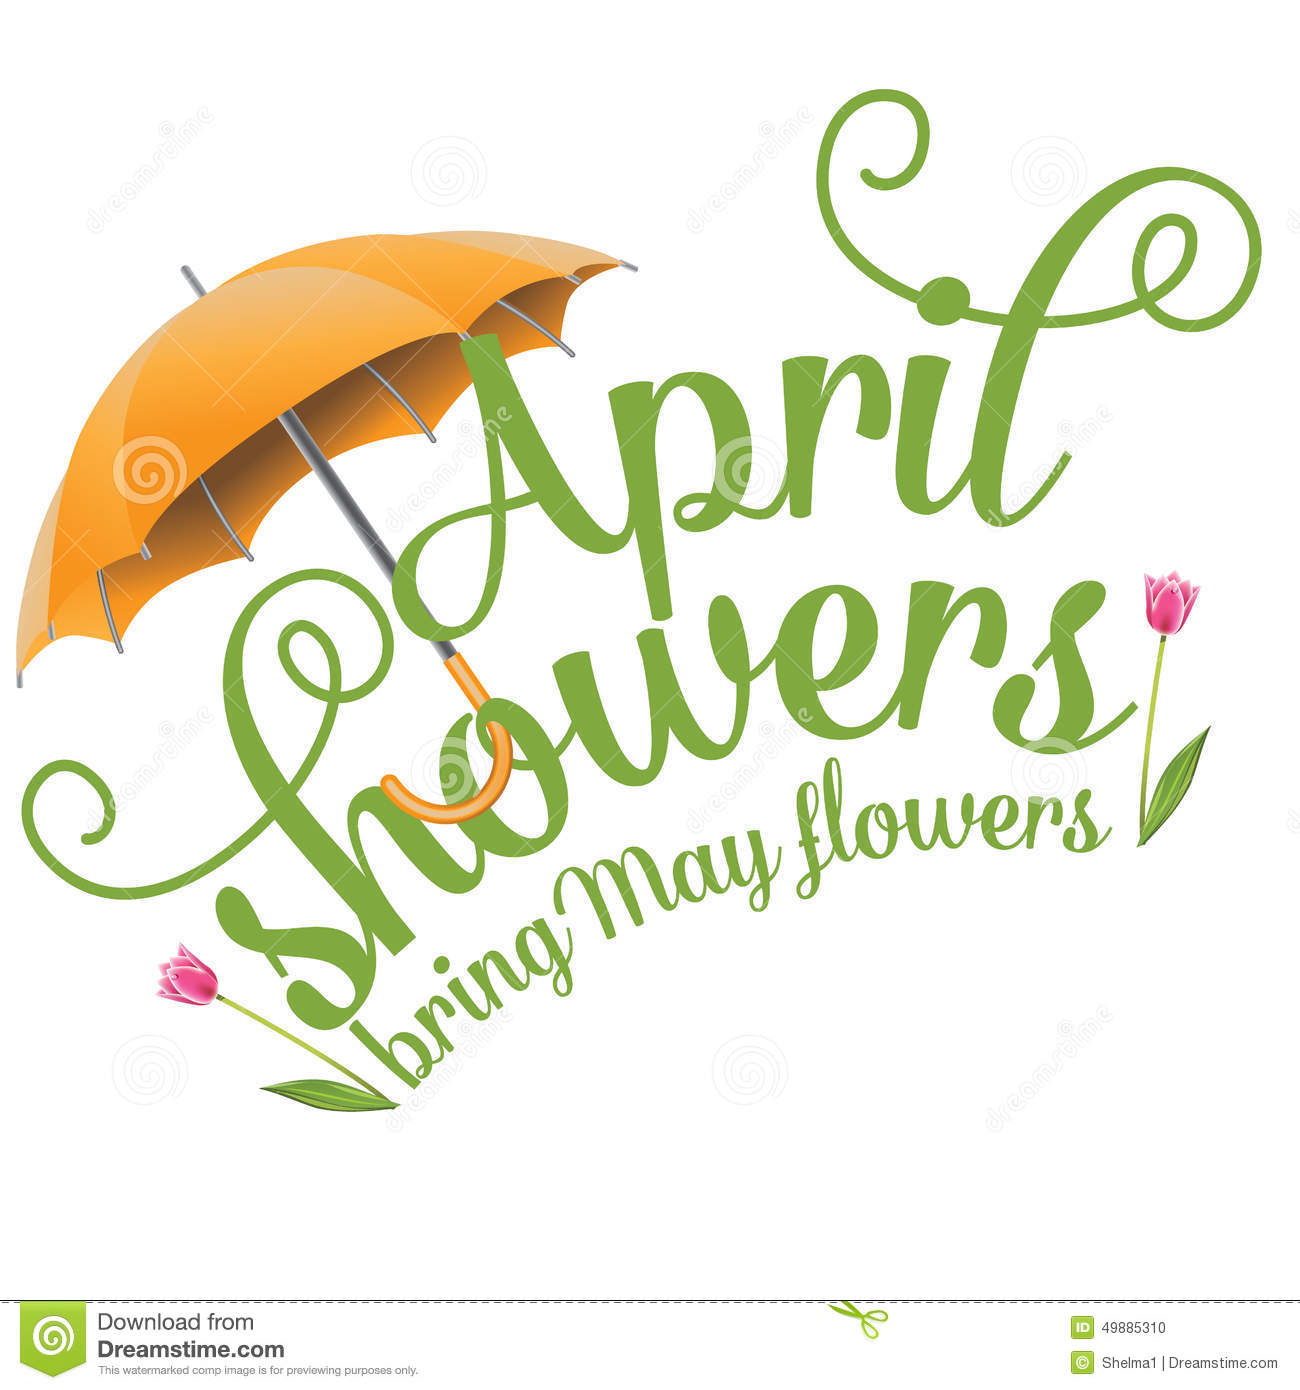 April Showers Bring May Flowers Design Stock Vector - Image: 49885310